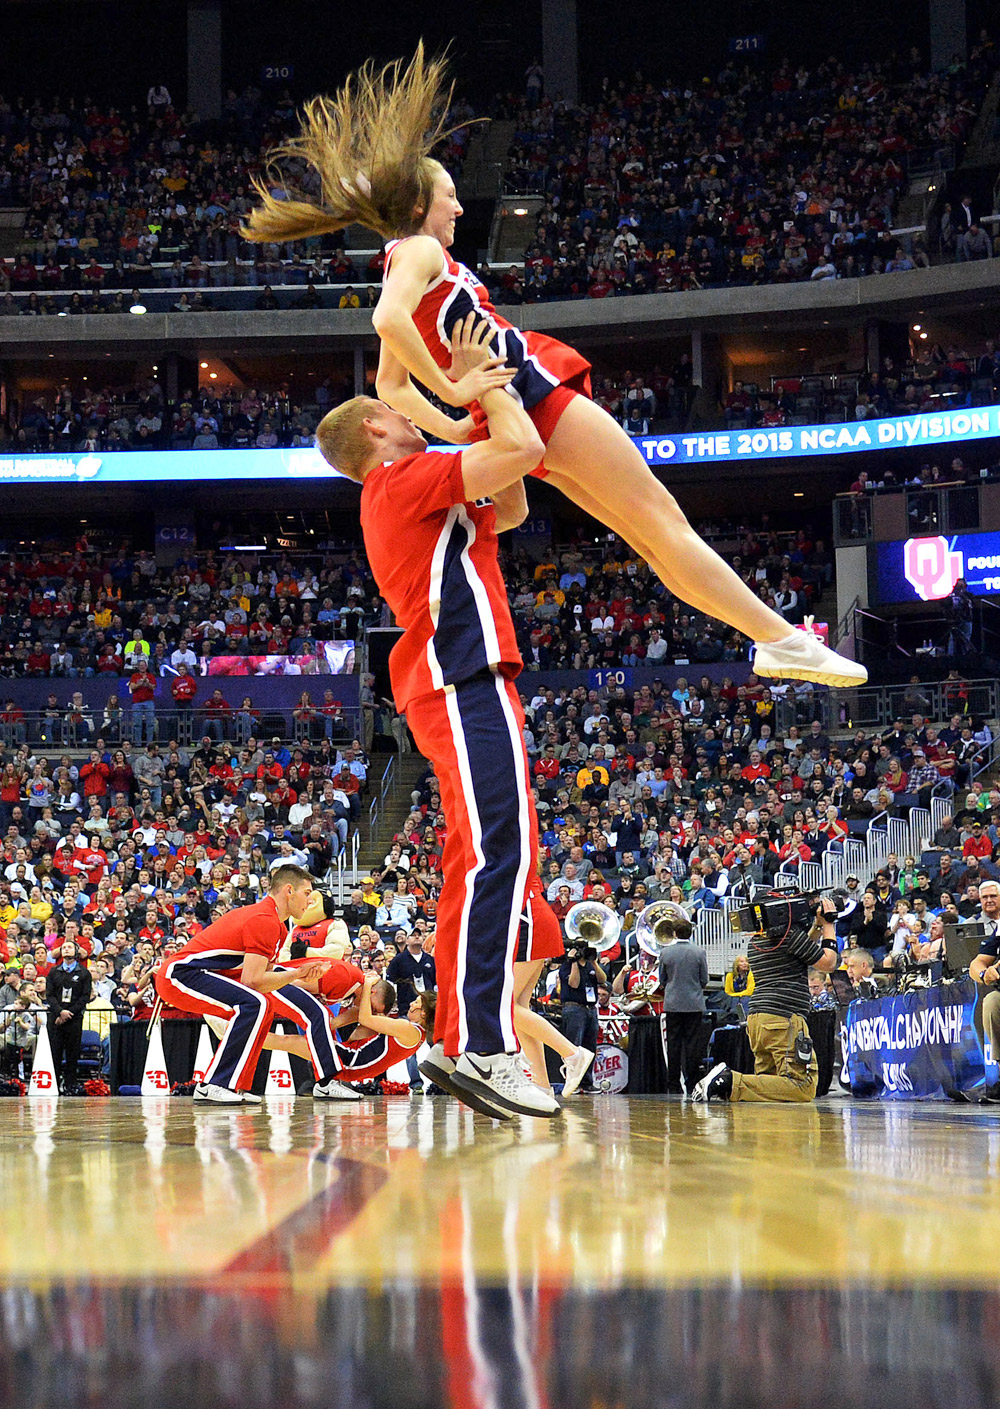 What is it like to be a male cheerleader?